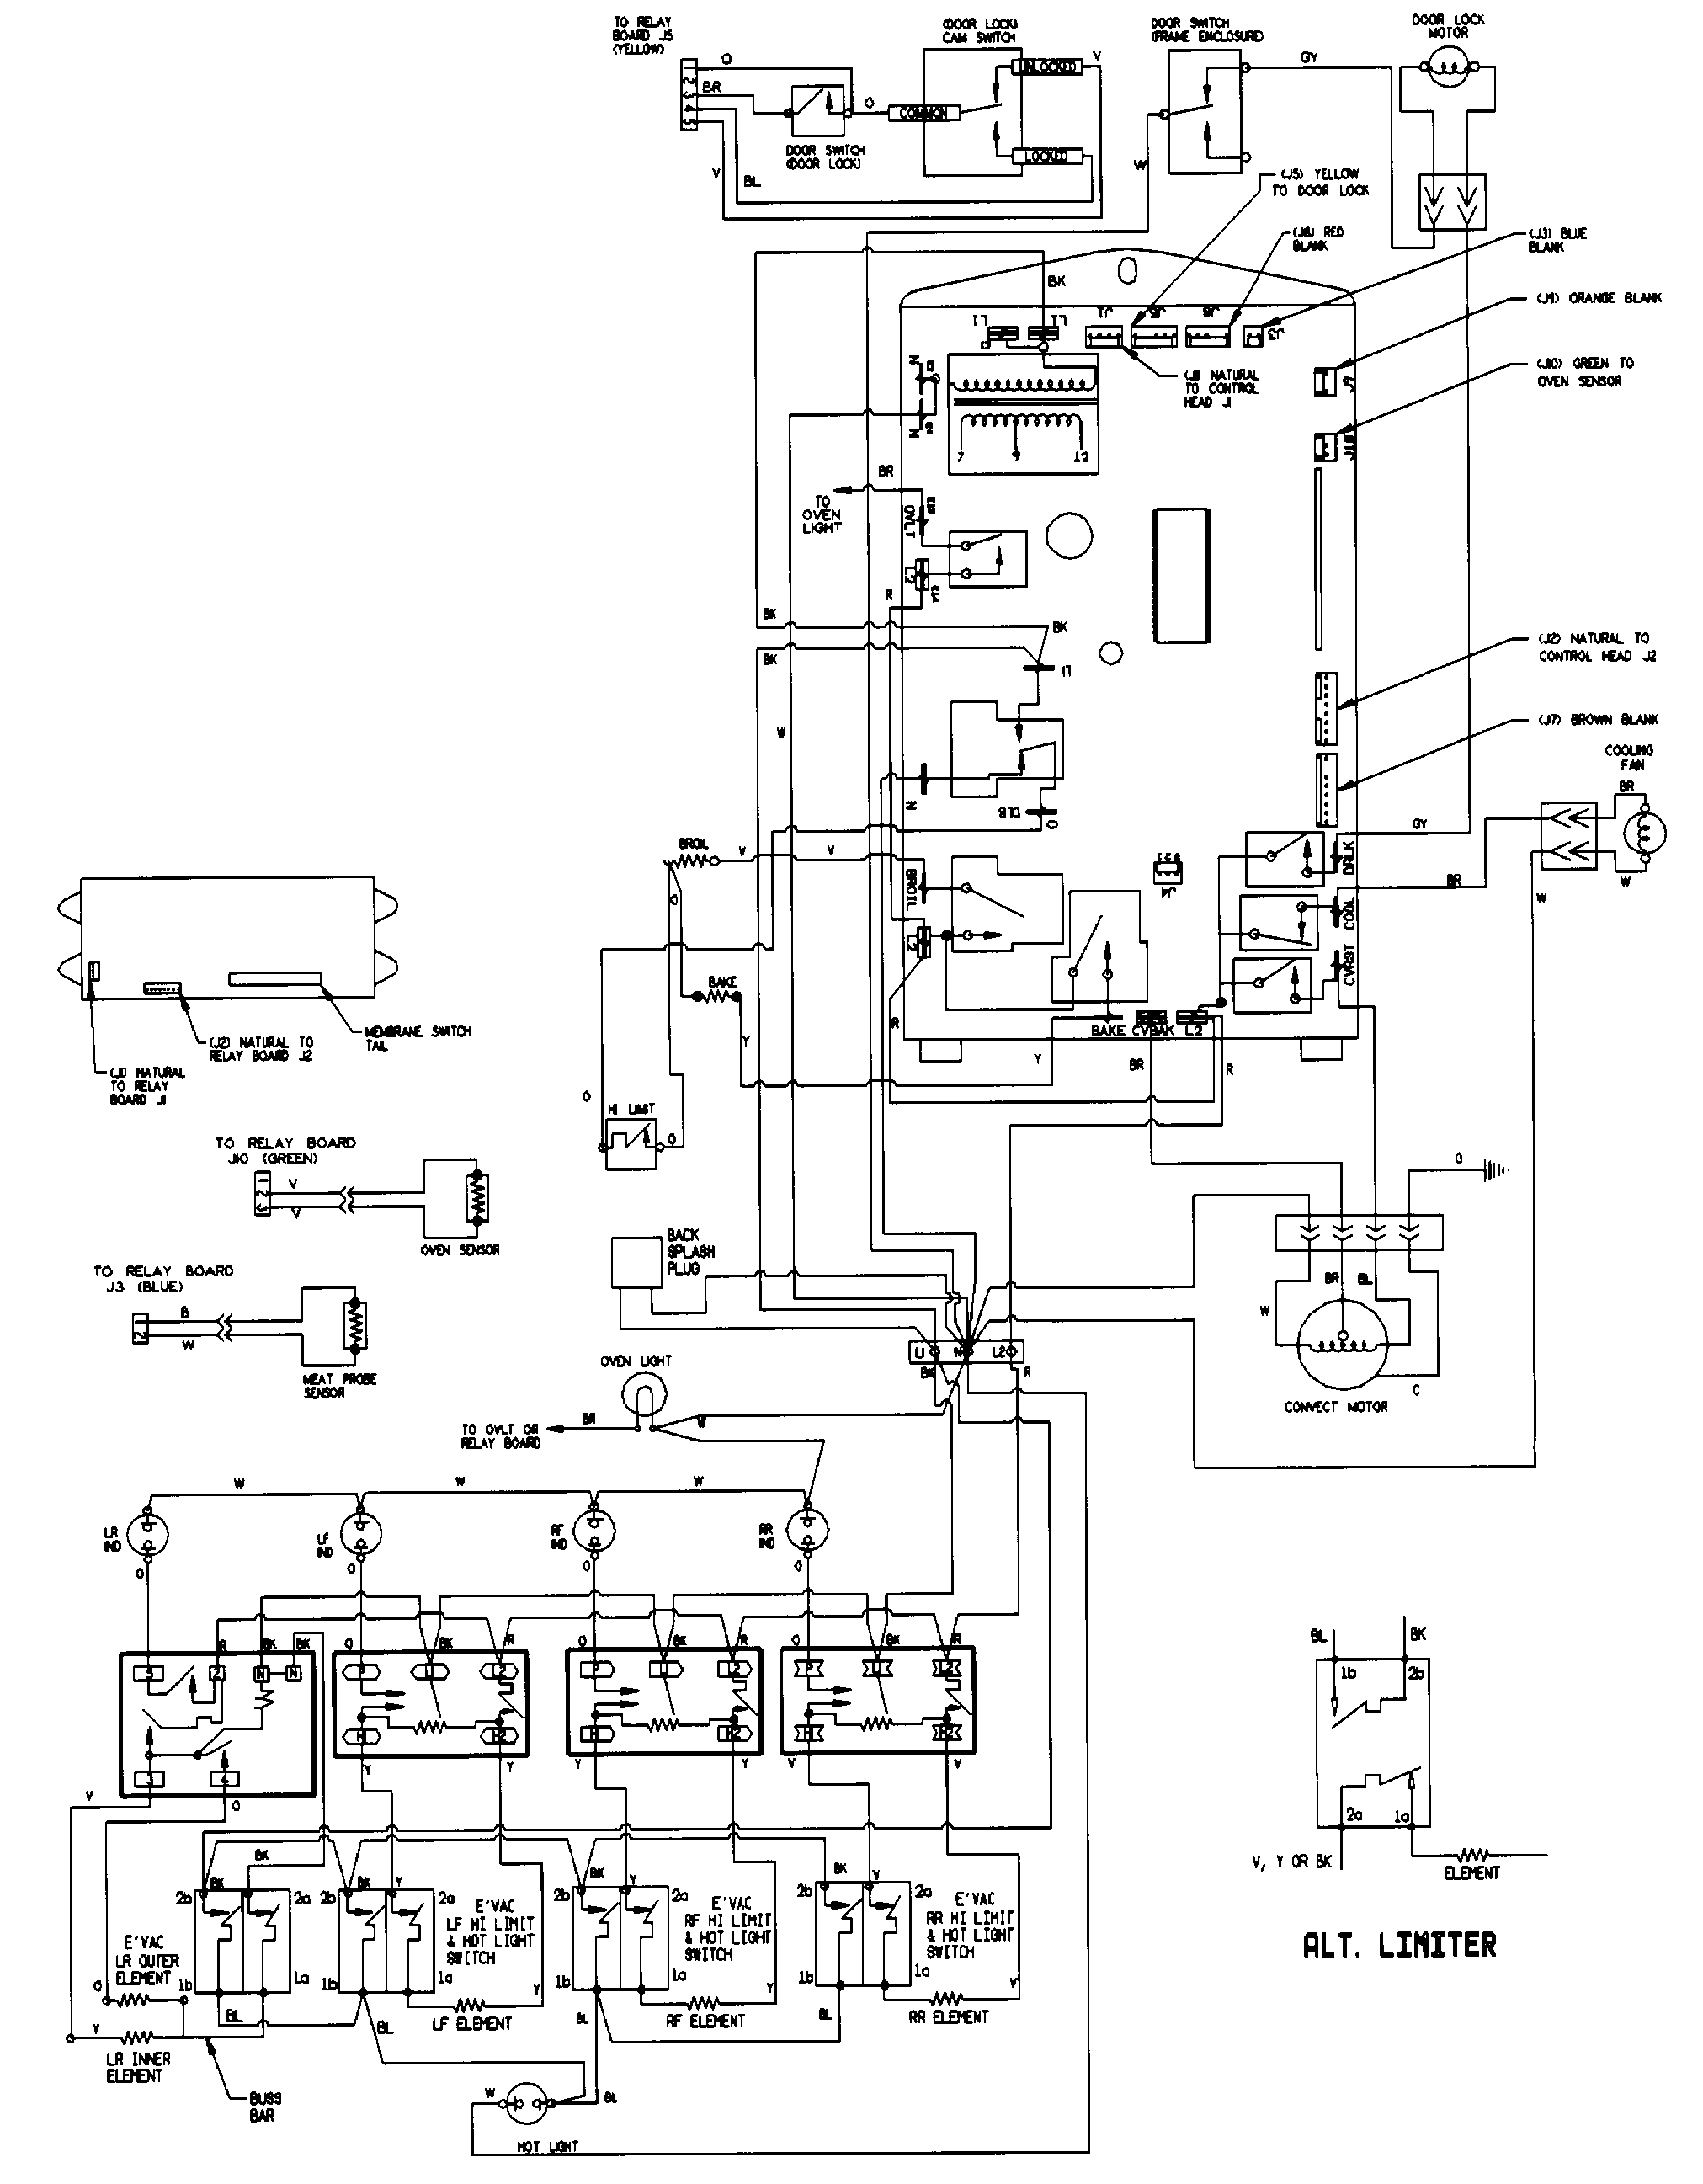 american range oven diagram schematic all about repair and american range oven diagram schematic garland stove wiring diagram garland home wiring diagrams wiring information